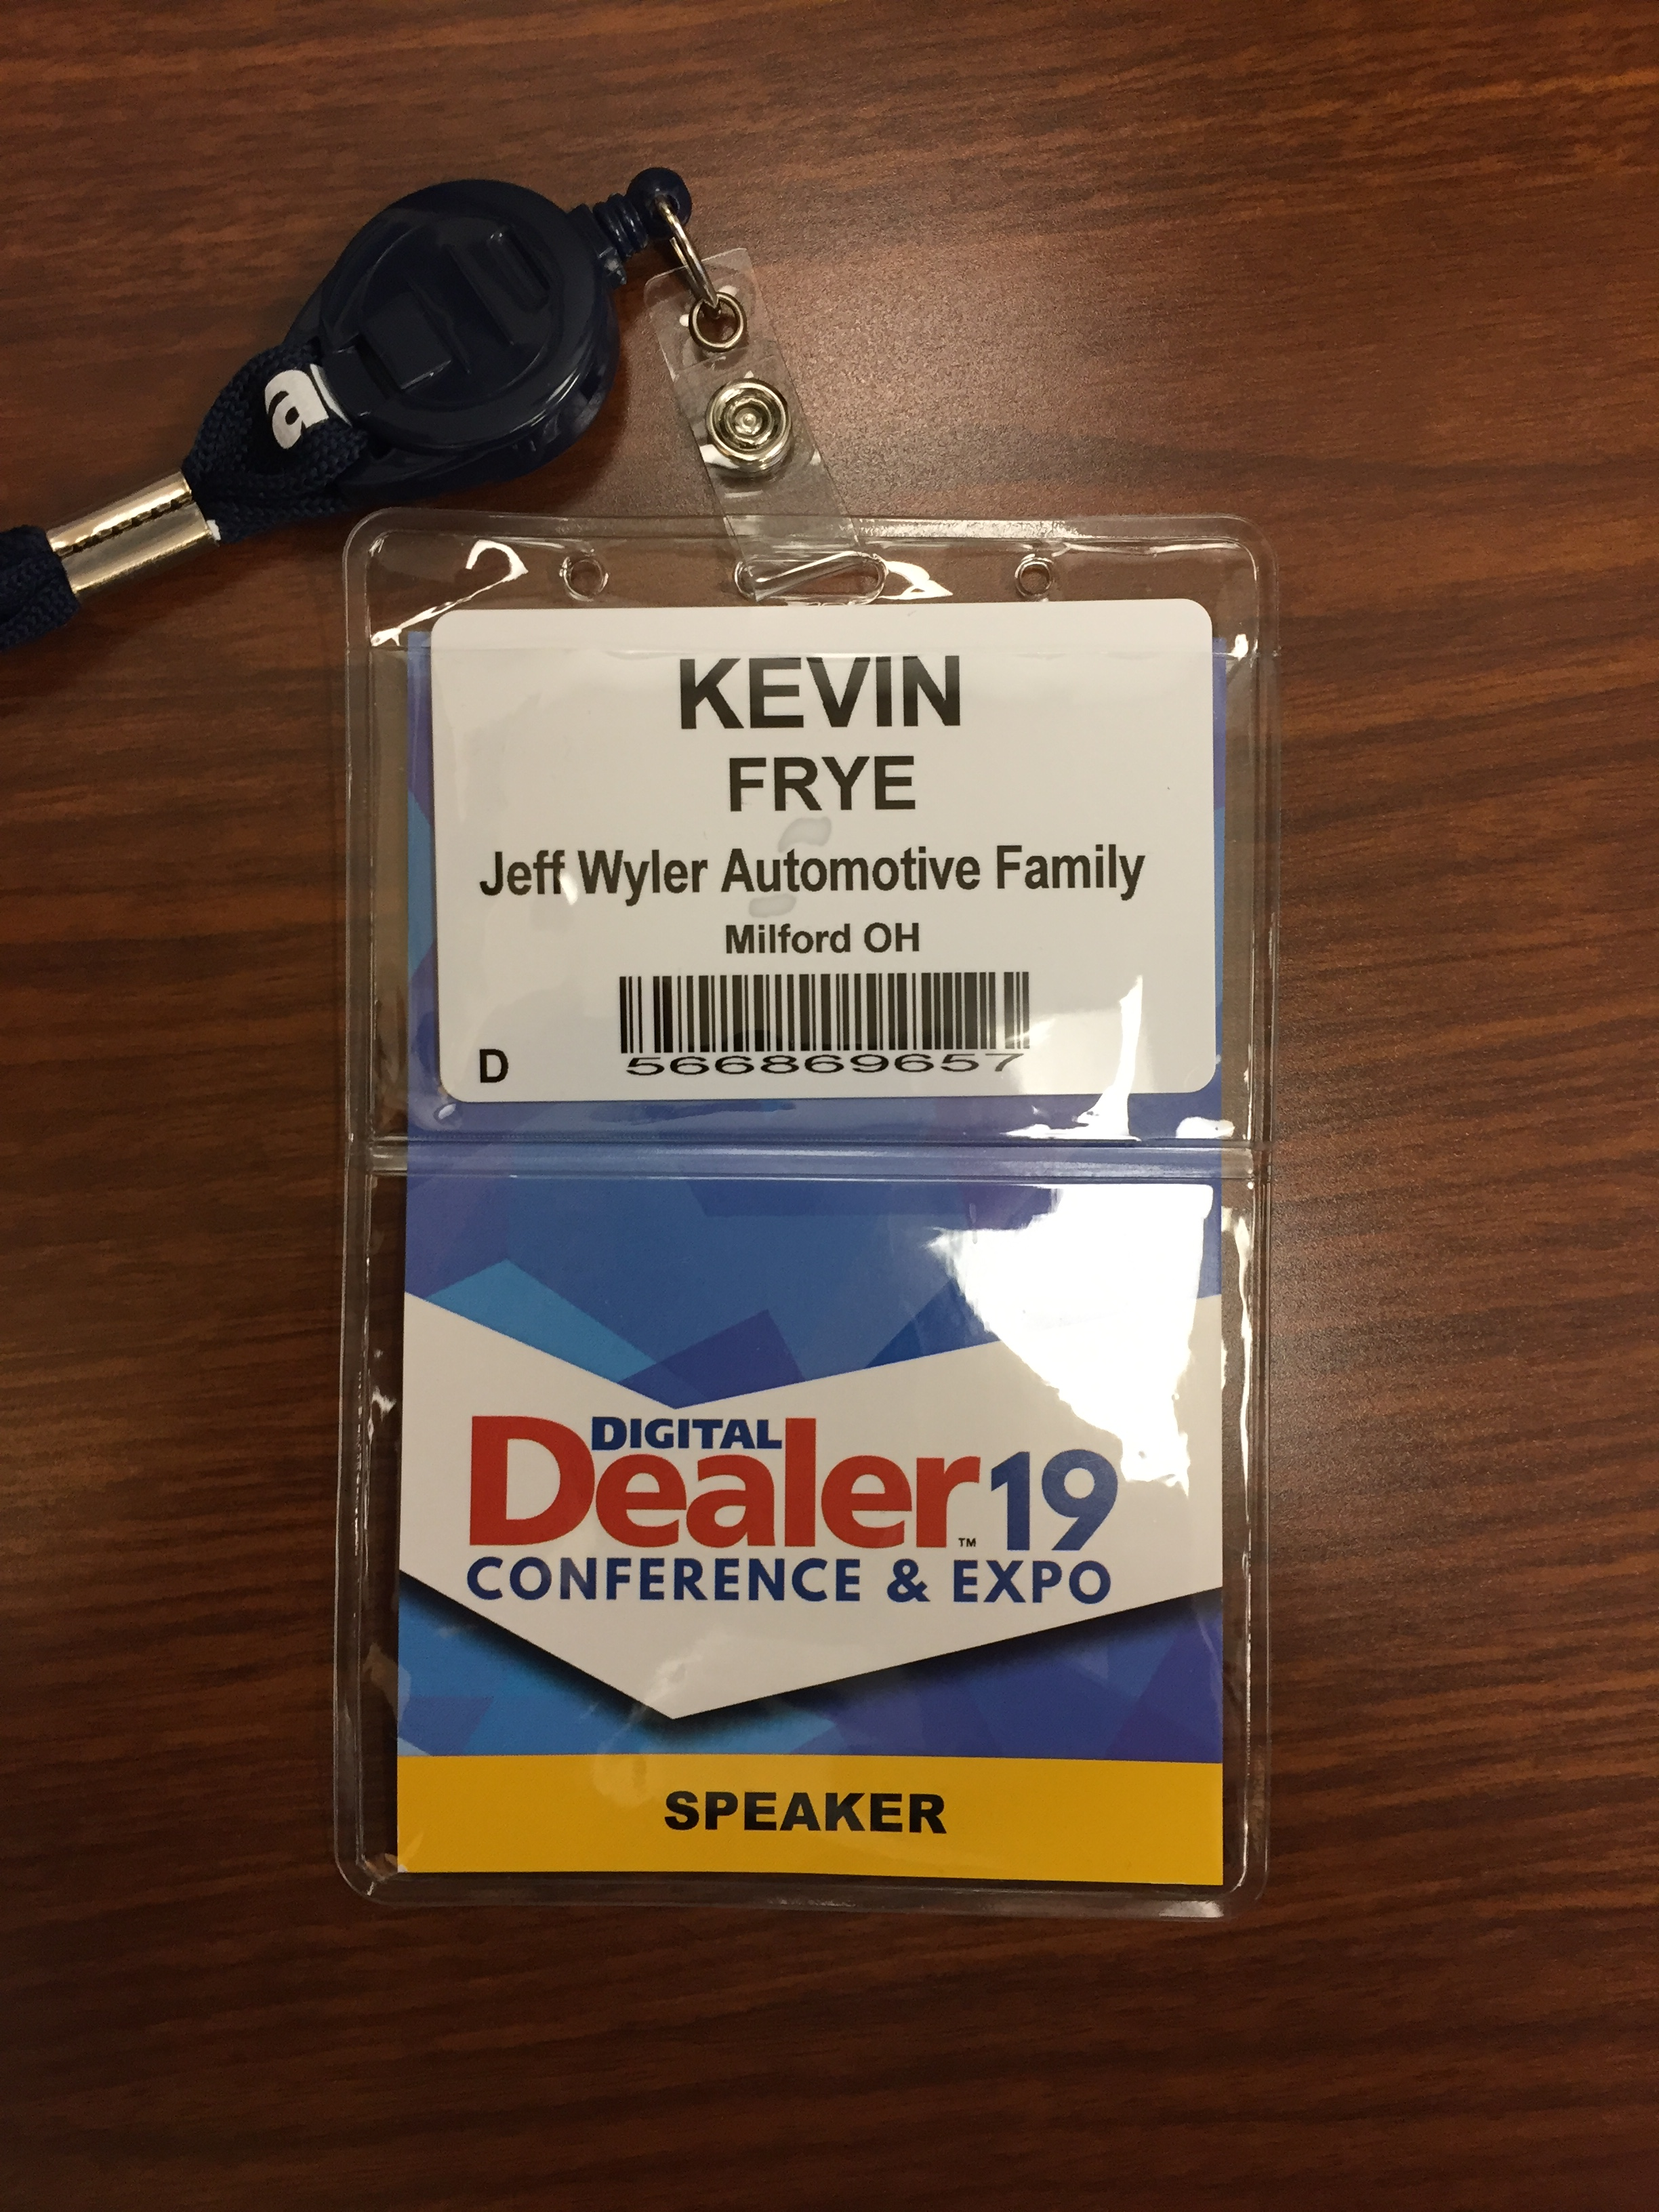 Digital Dealer 19 badge